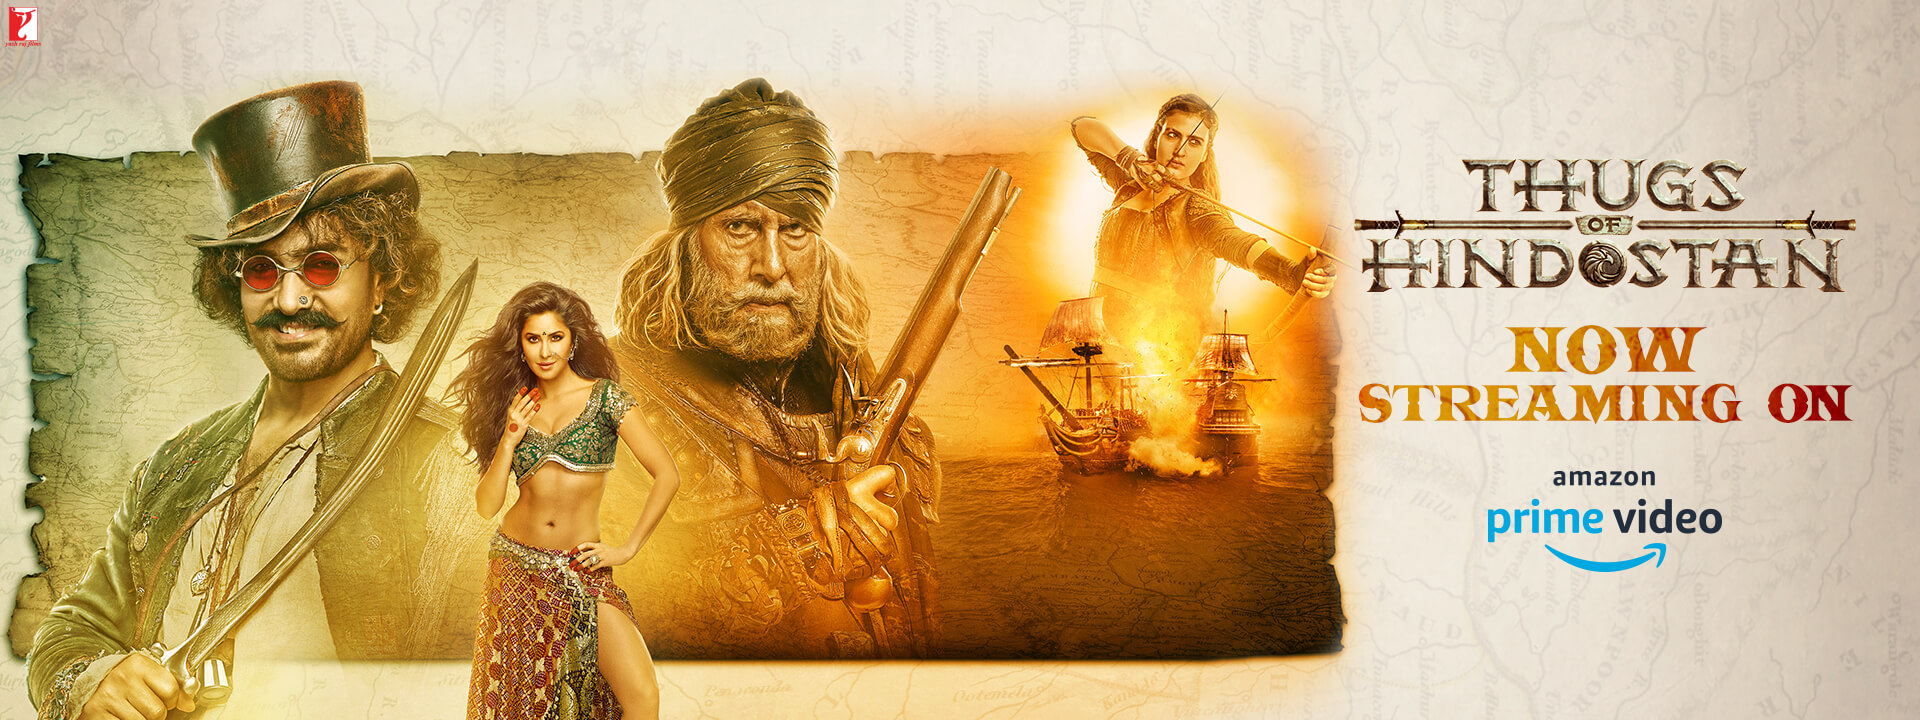 THUGS OF HINDOSTAN - Amitabh Bachchan, Aamir Khan, Katrina Kaif, Fatima Sana Shaikh - In Cinemas Now